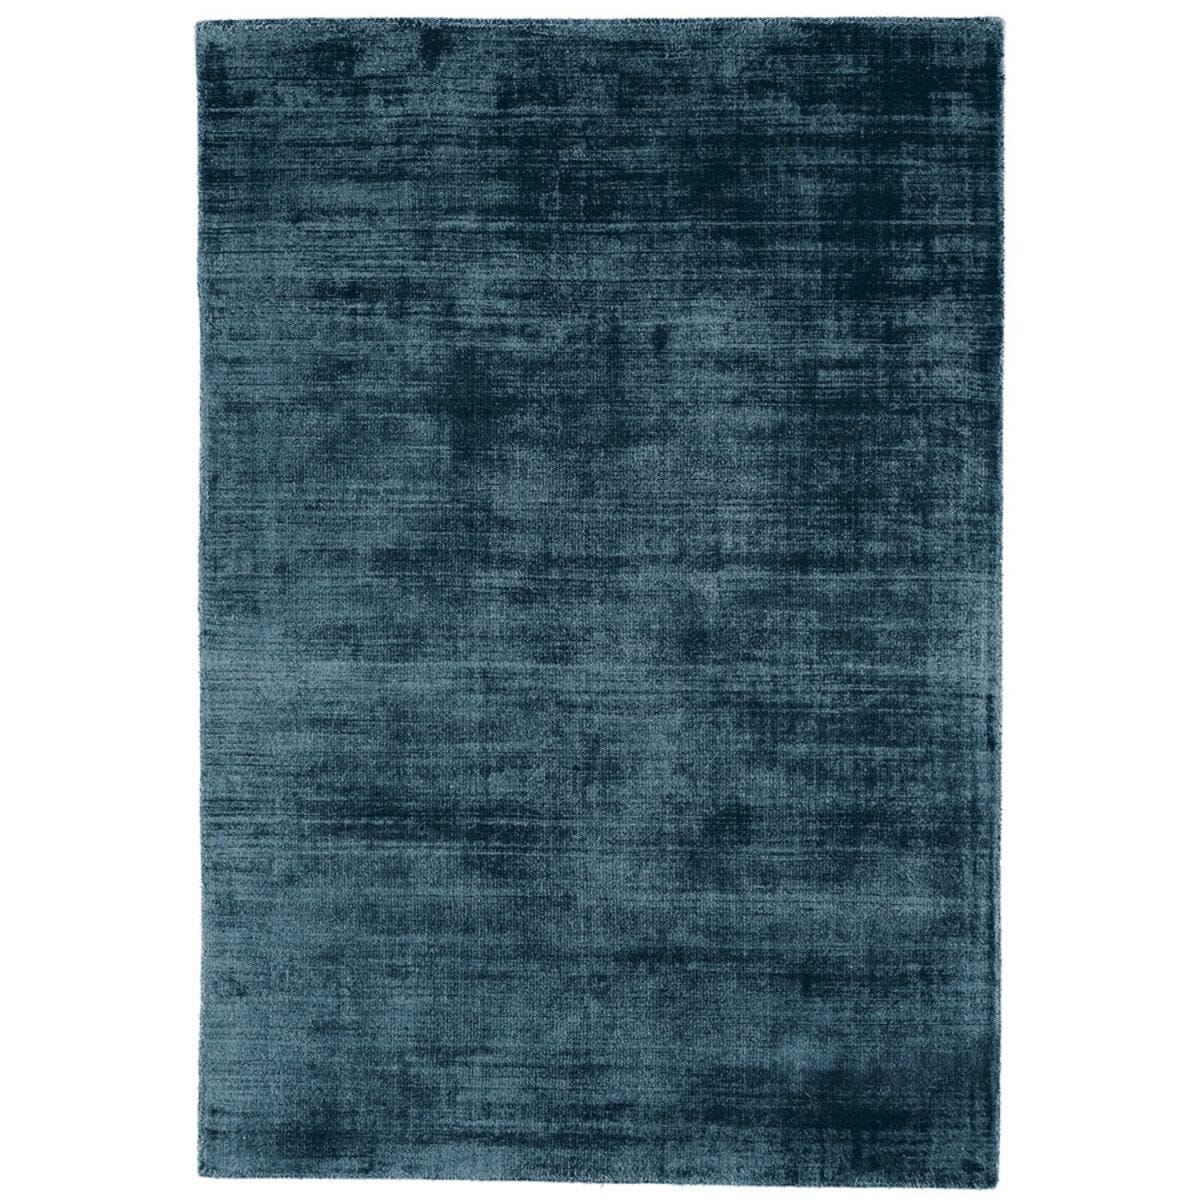 Asiatic Blade Rug , 120 x 170cm - Teal